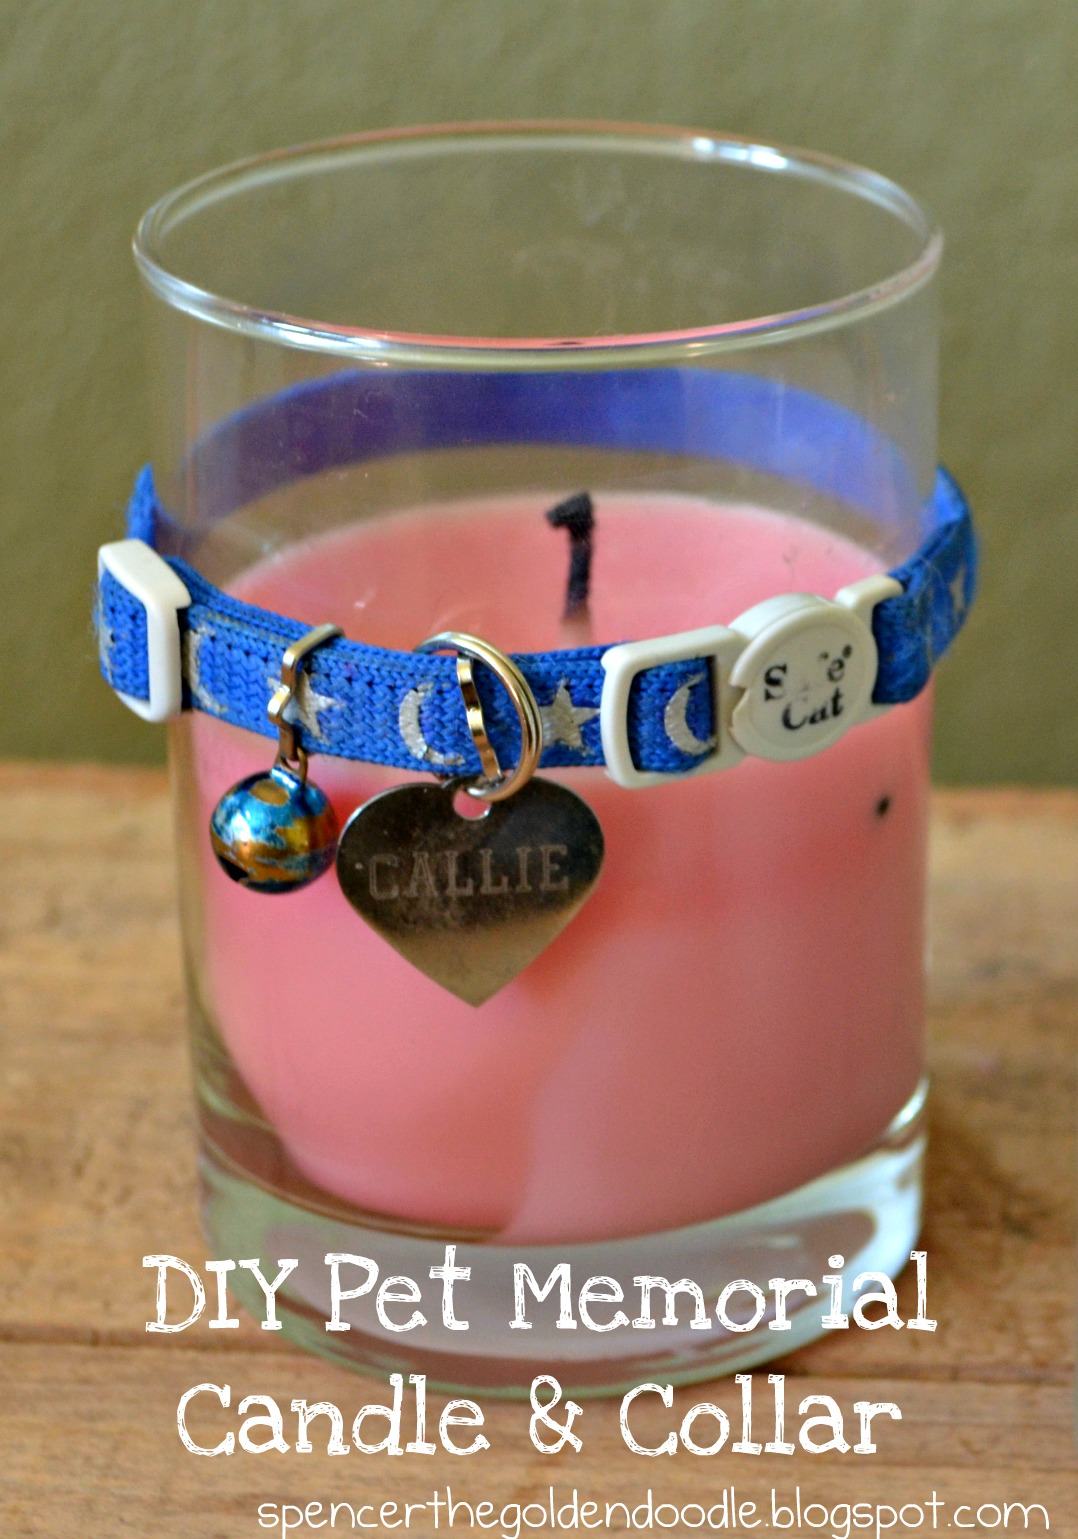 Finest Spencer the Goldendoodle: Pet Memorial Book, DIY, Paying it Forward JF15